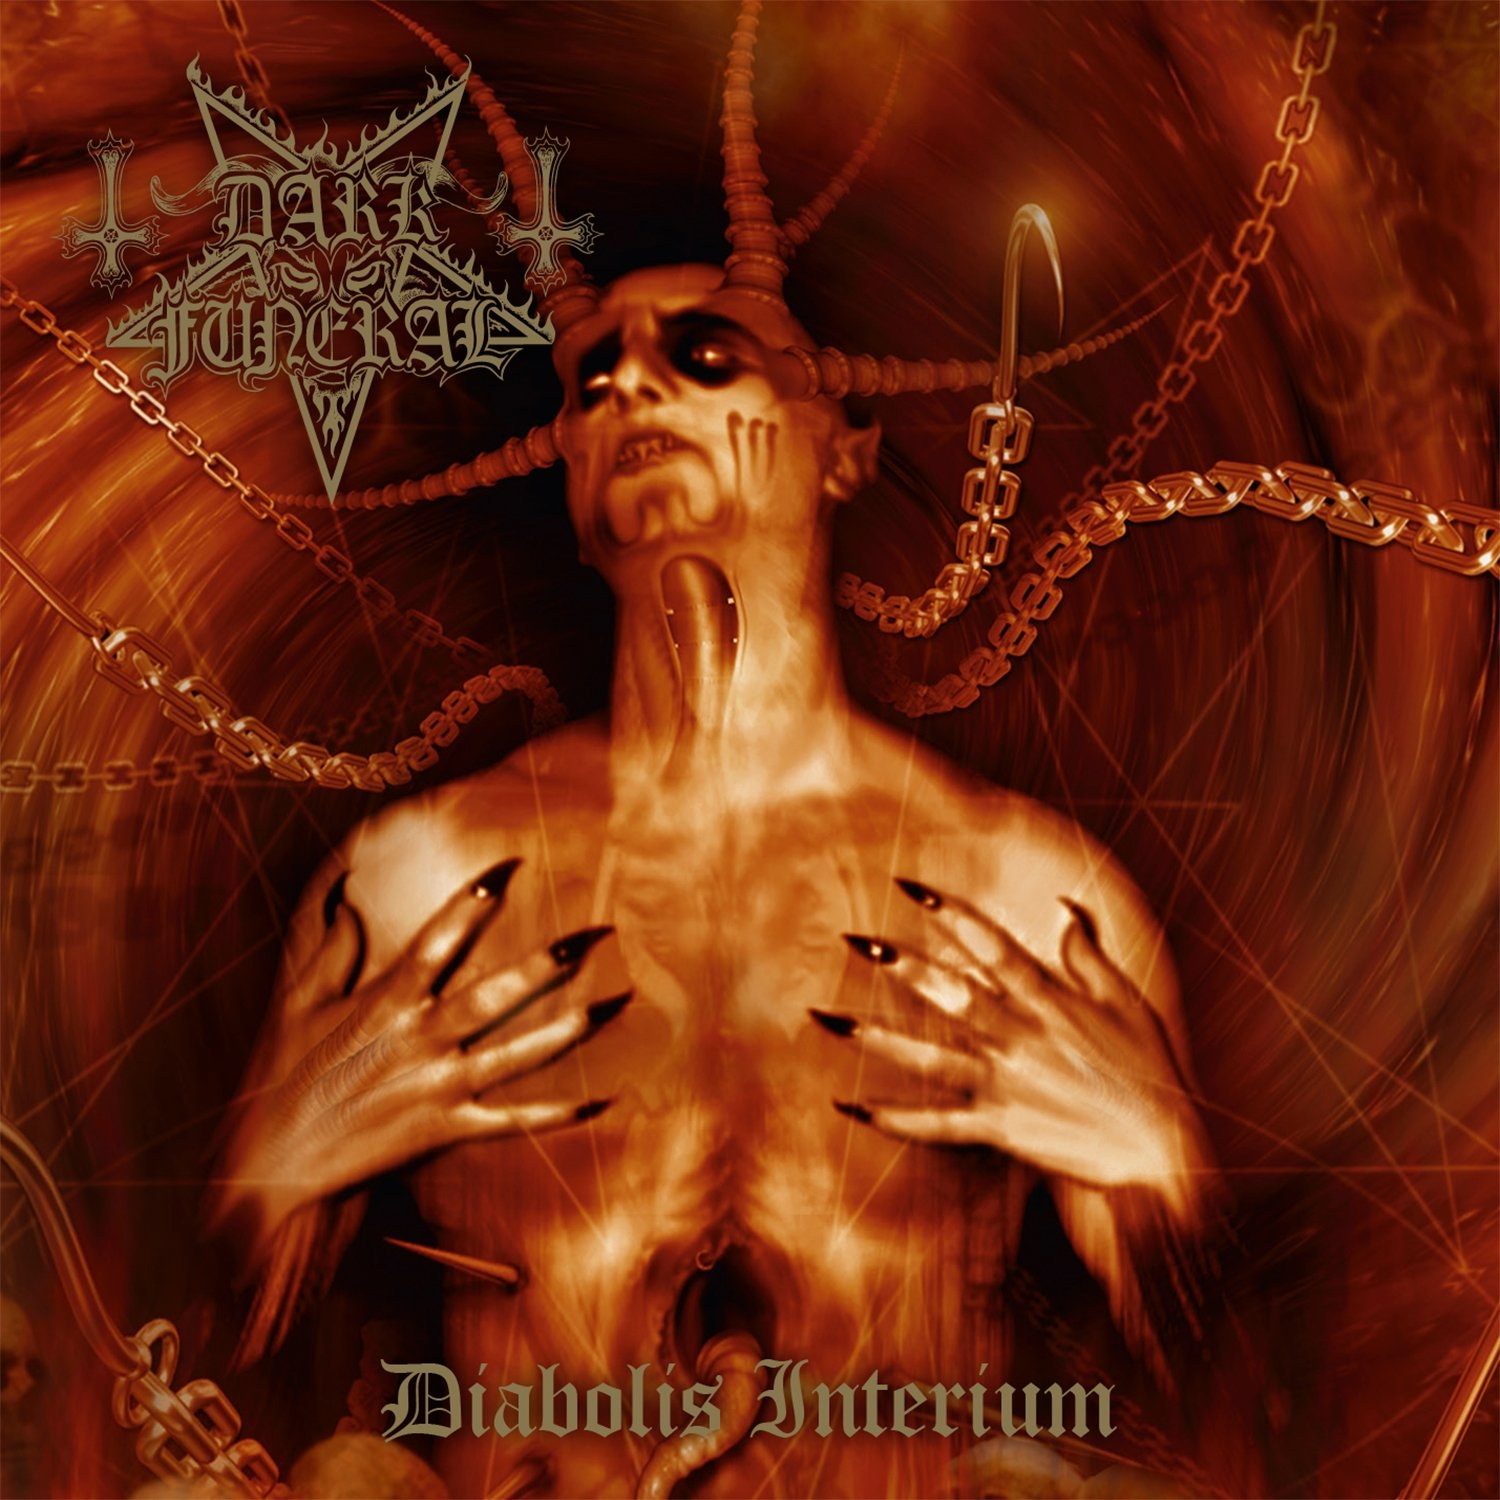 Review for Dark Funeral - Diabolis Interium